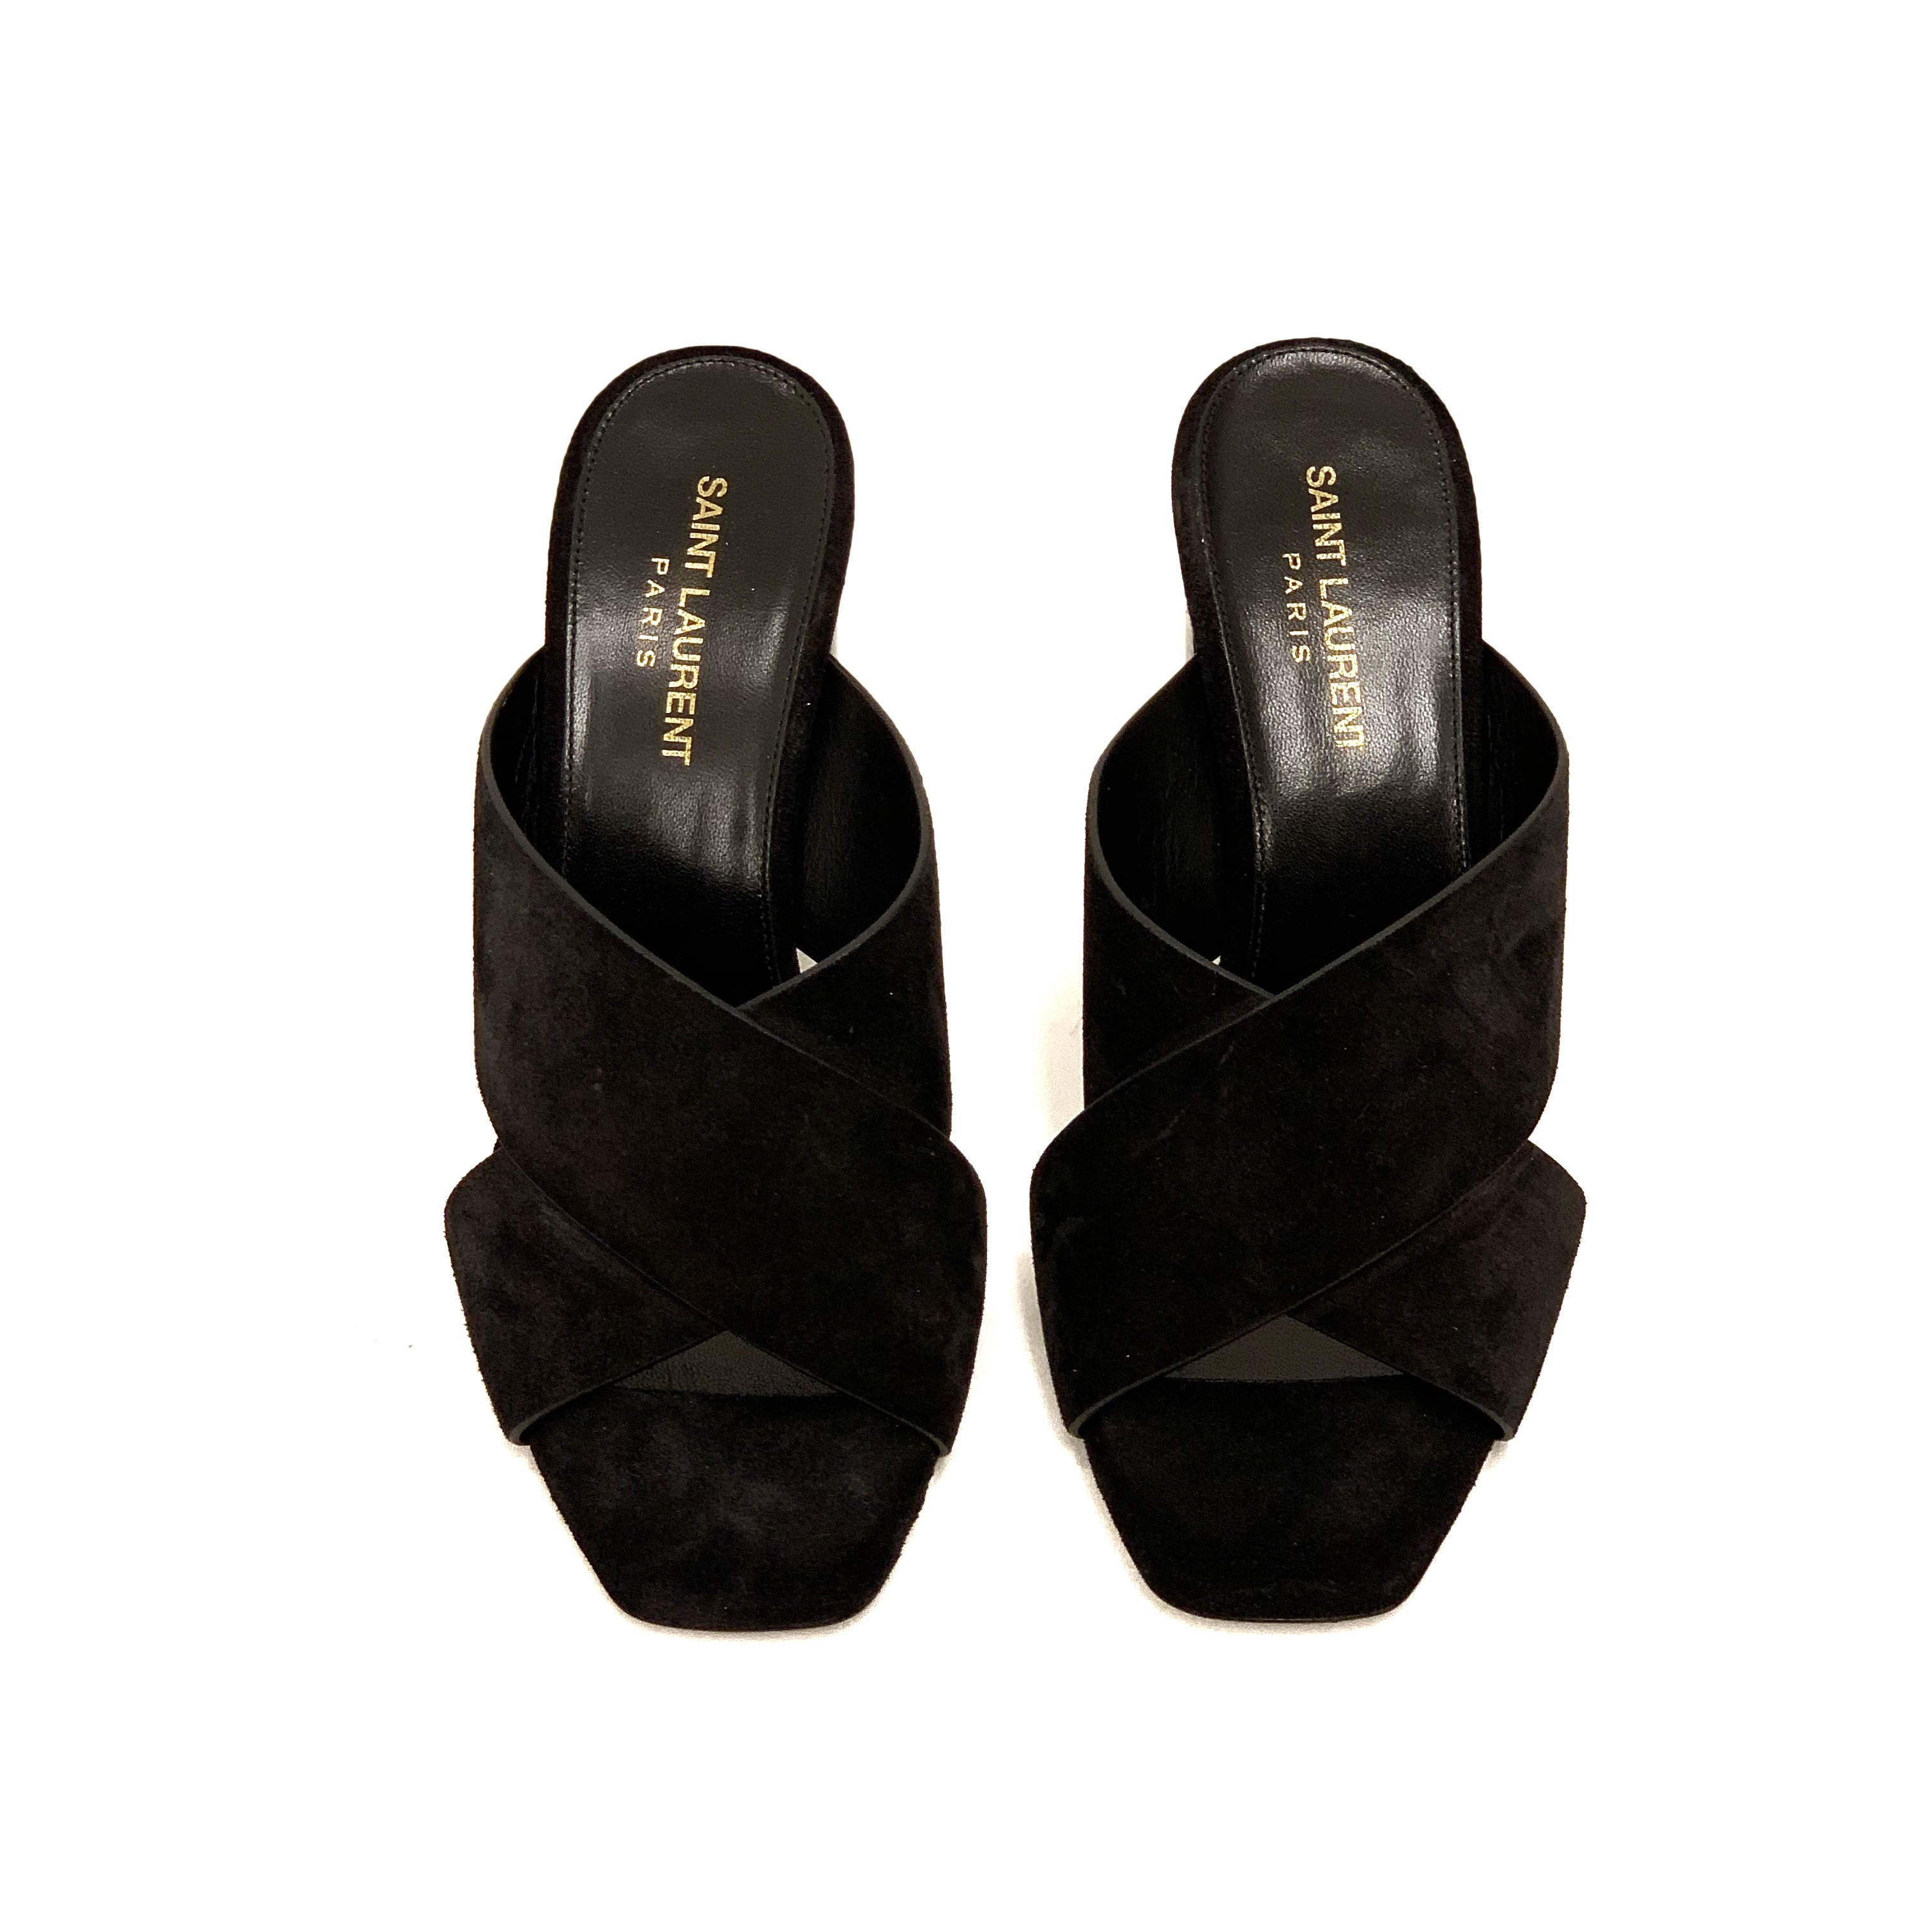 Saint Laurent slip in sandal 38 SV5203